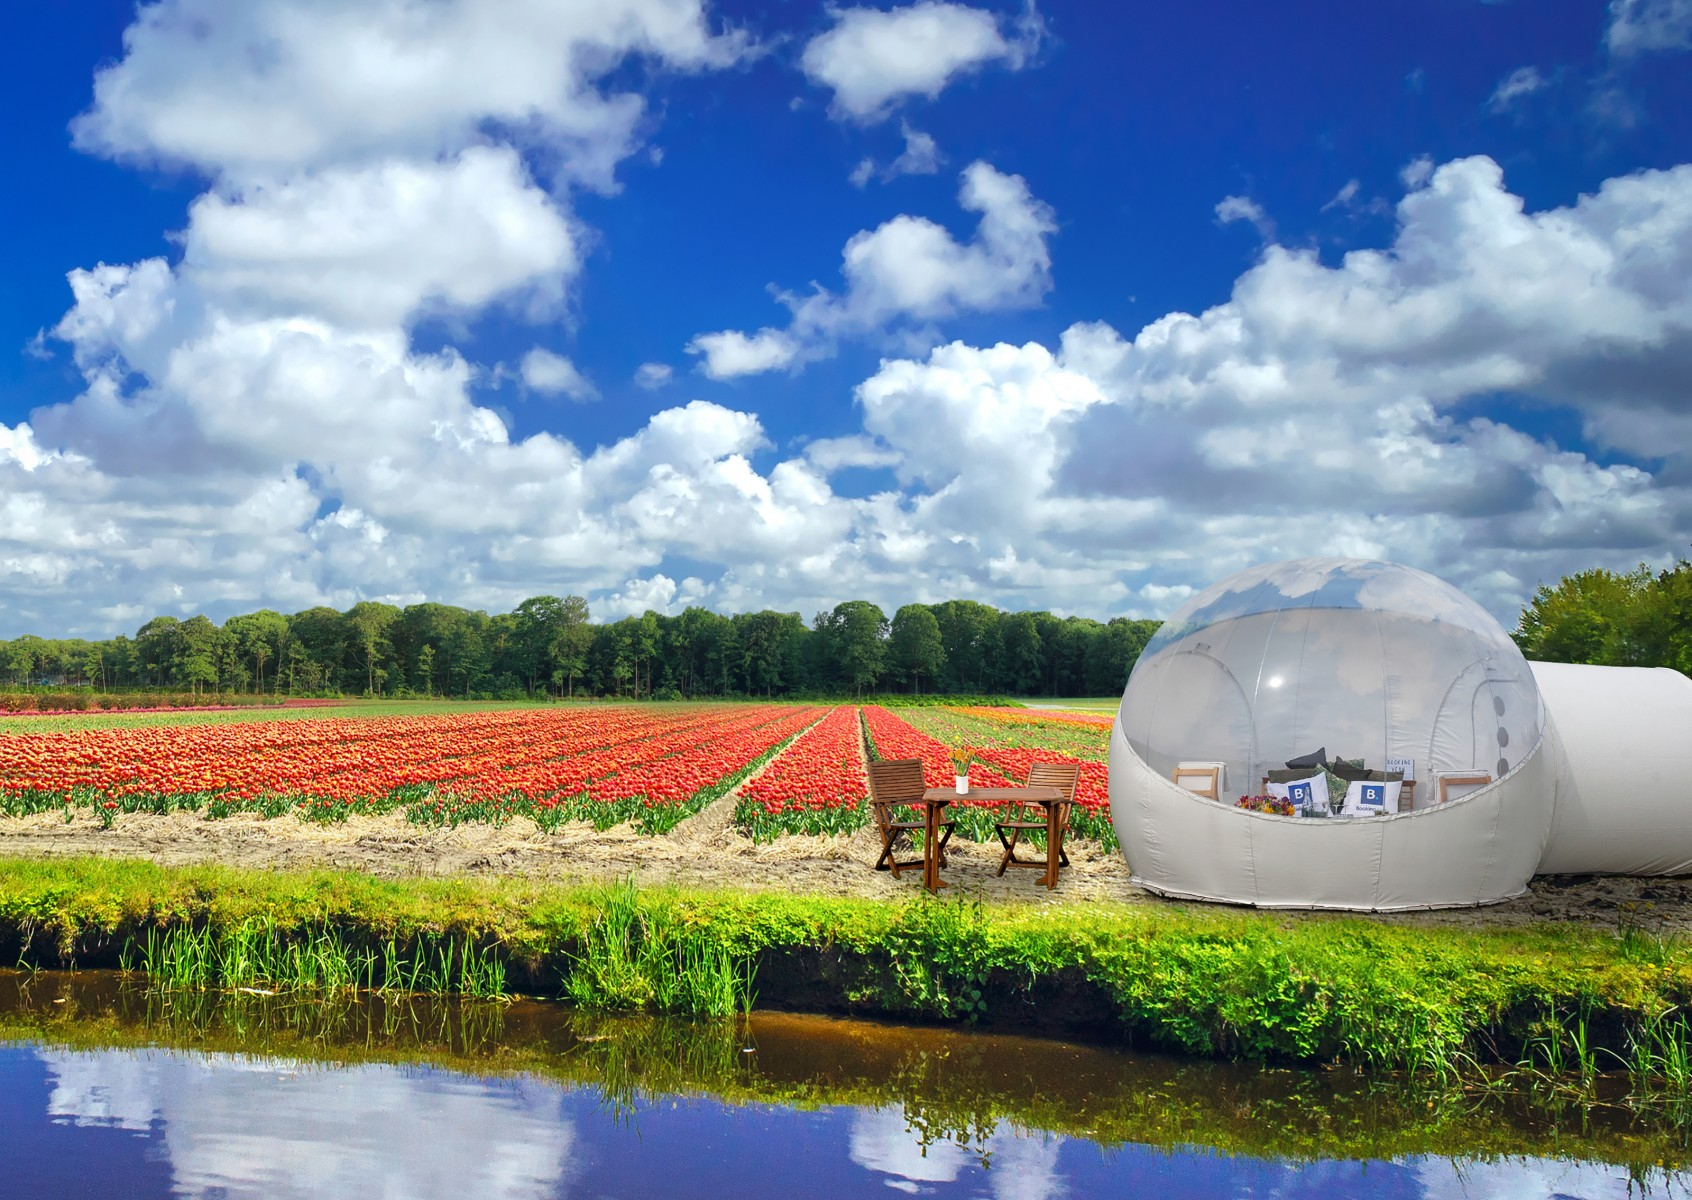 The Tulip Pod at Keukenhof - exterior